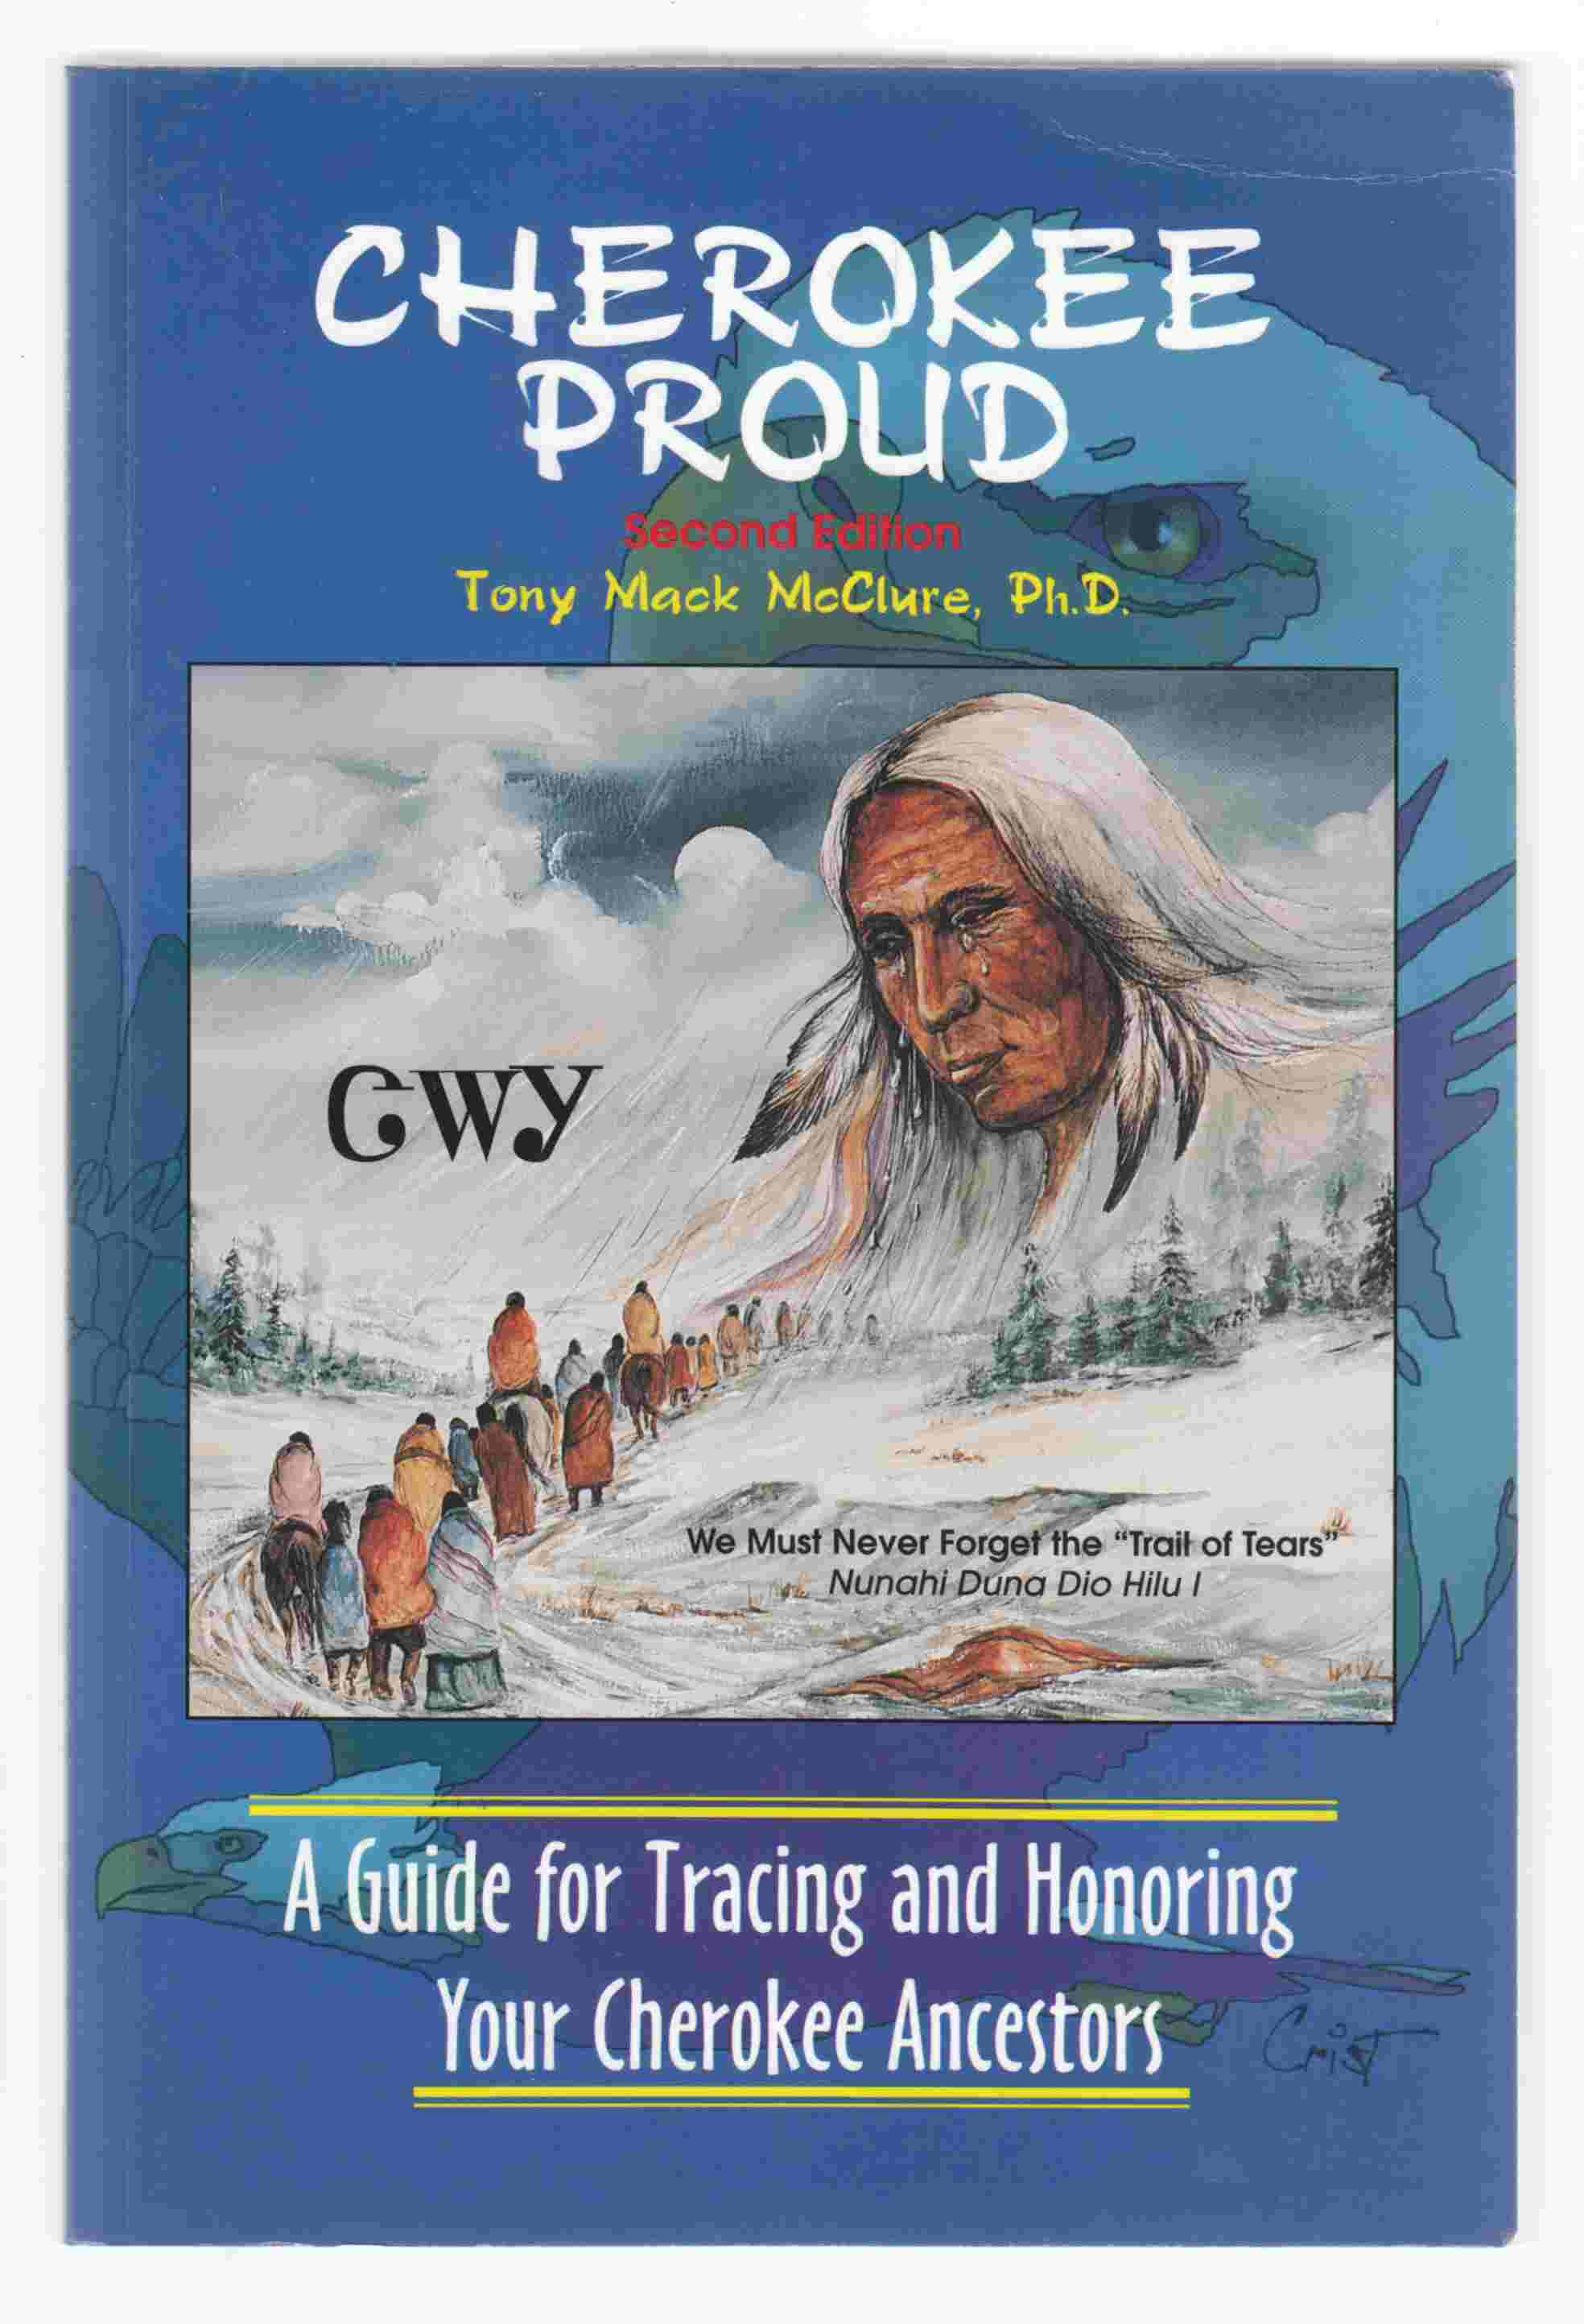 Image for Cherokee Proud, Second Edition A Guide for Tracing and Honoring Your Cherokee Ancestors